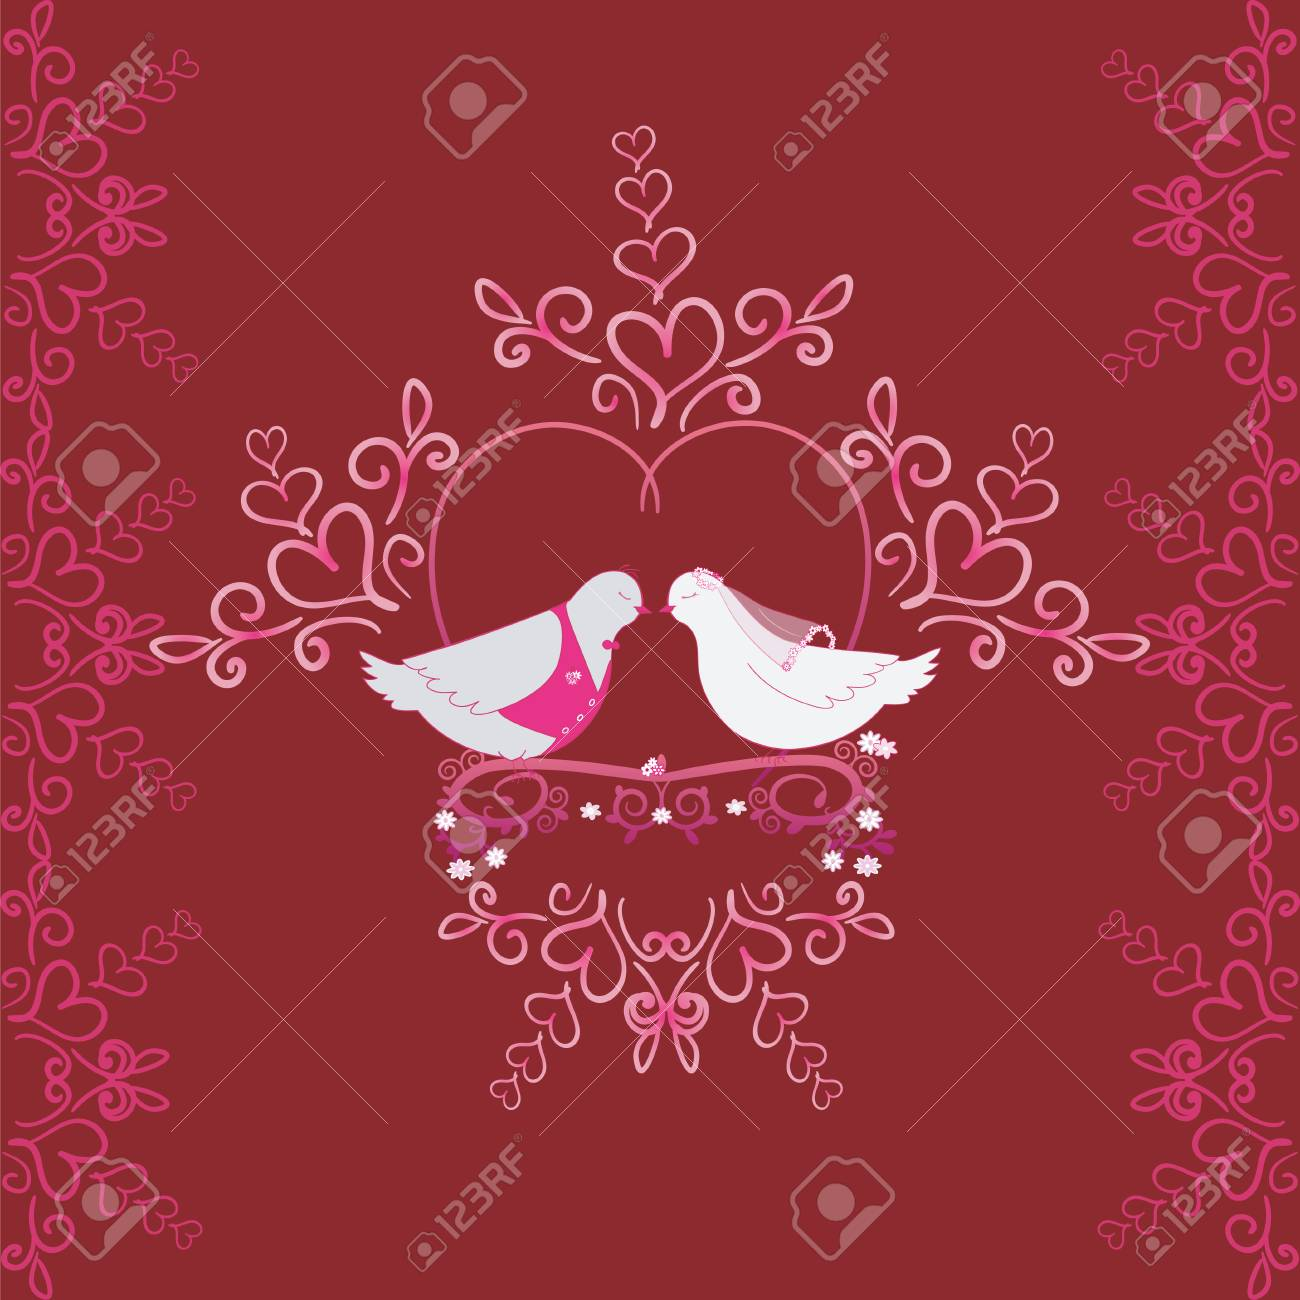 Illustration Of Wedding Pigeons And Heart. Seamless Texture Or ...